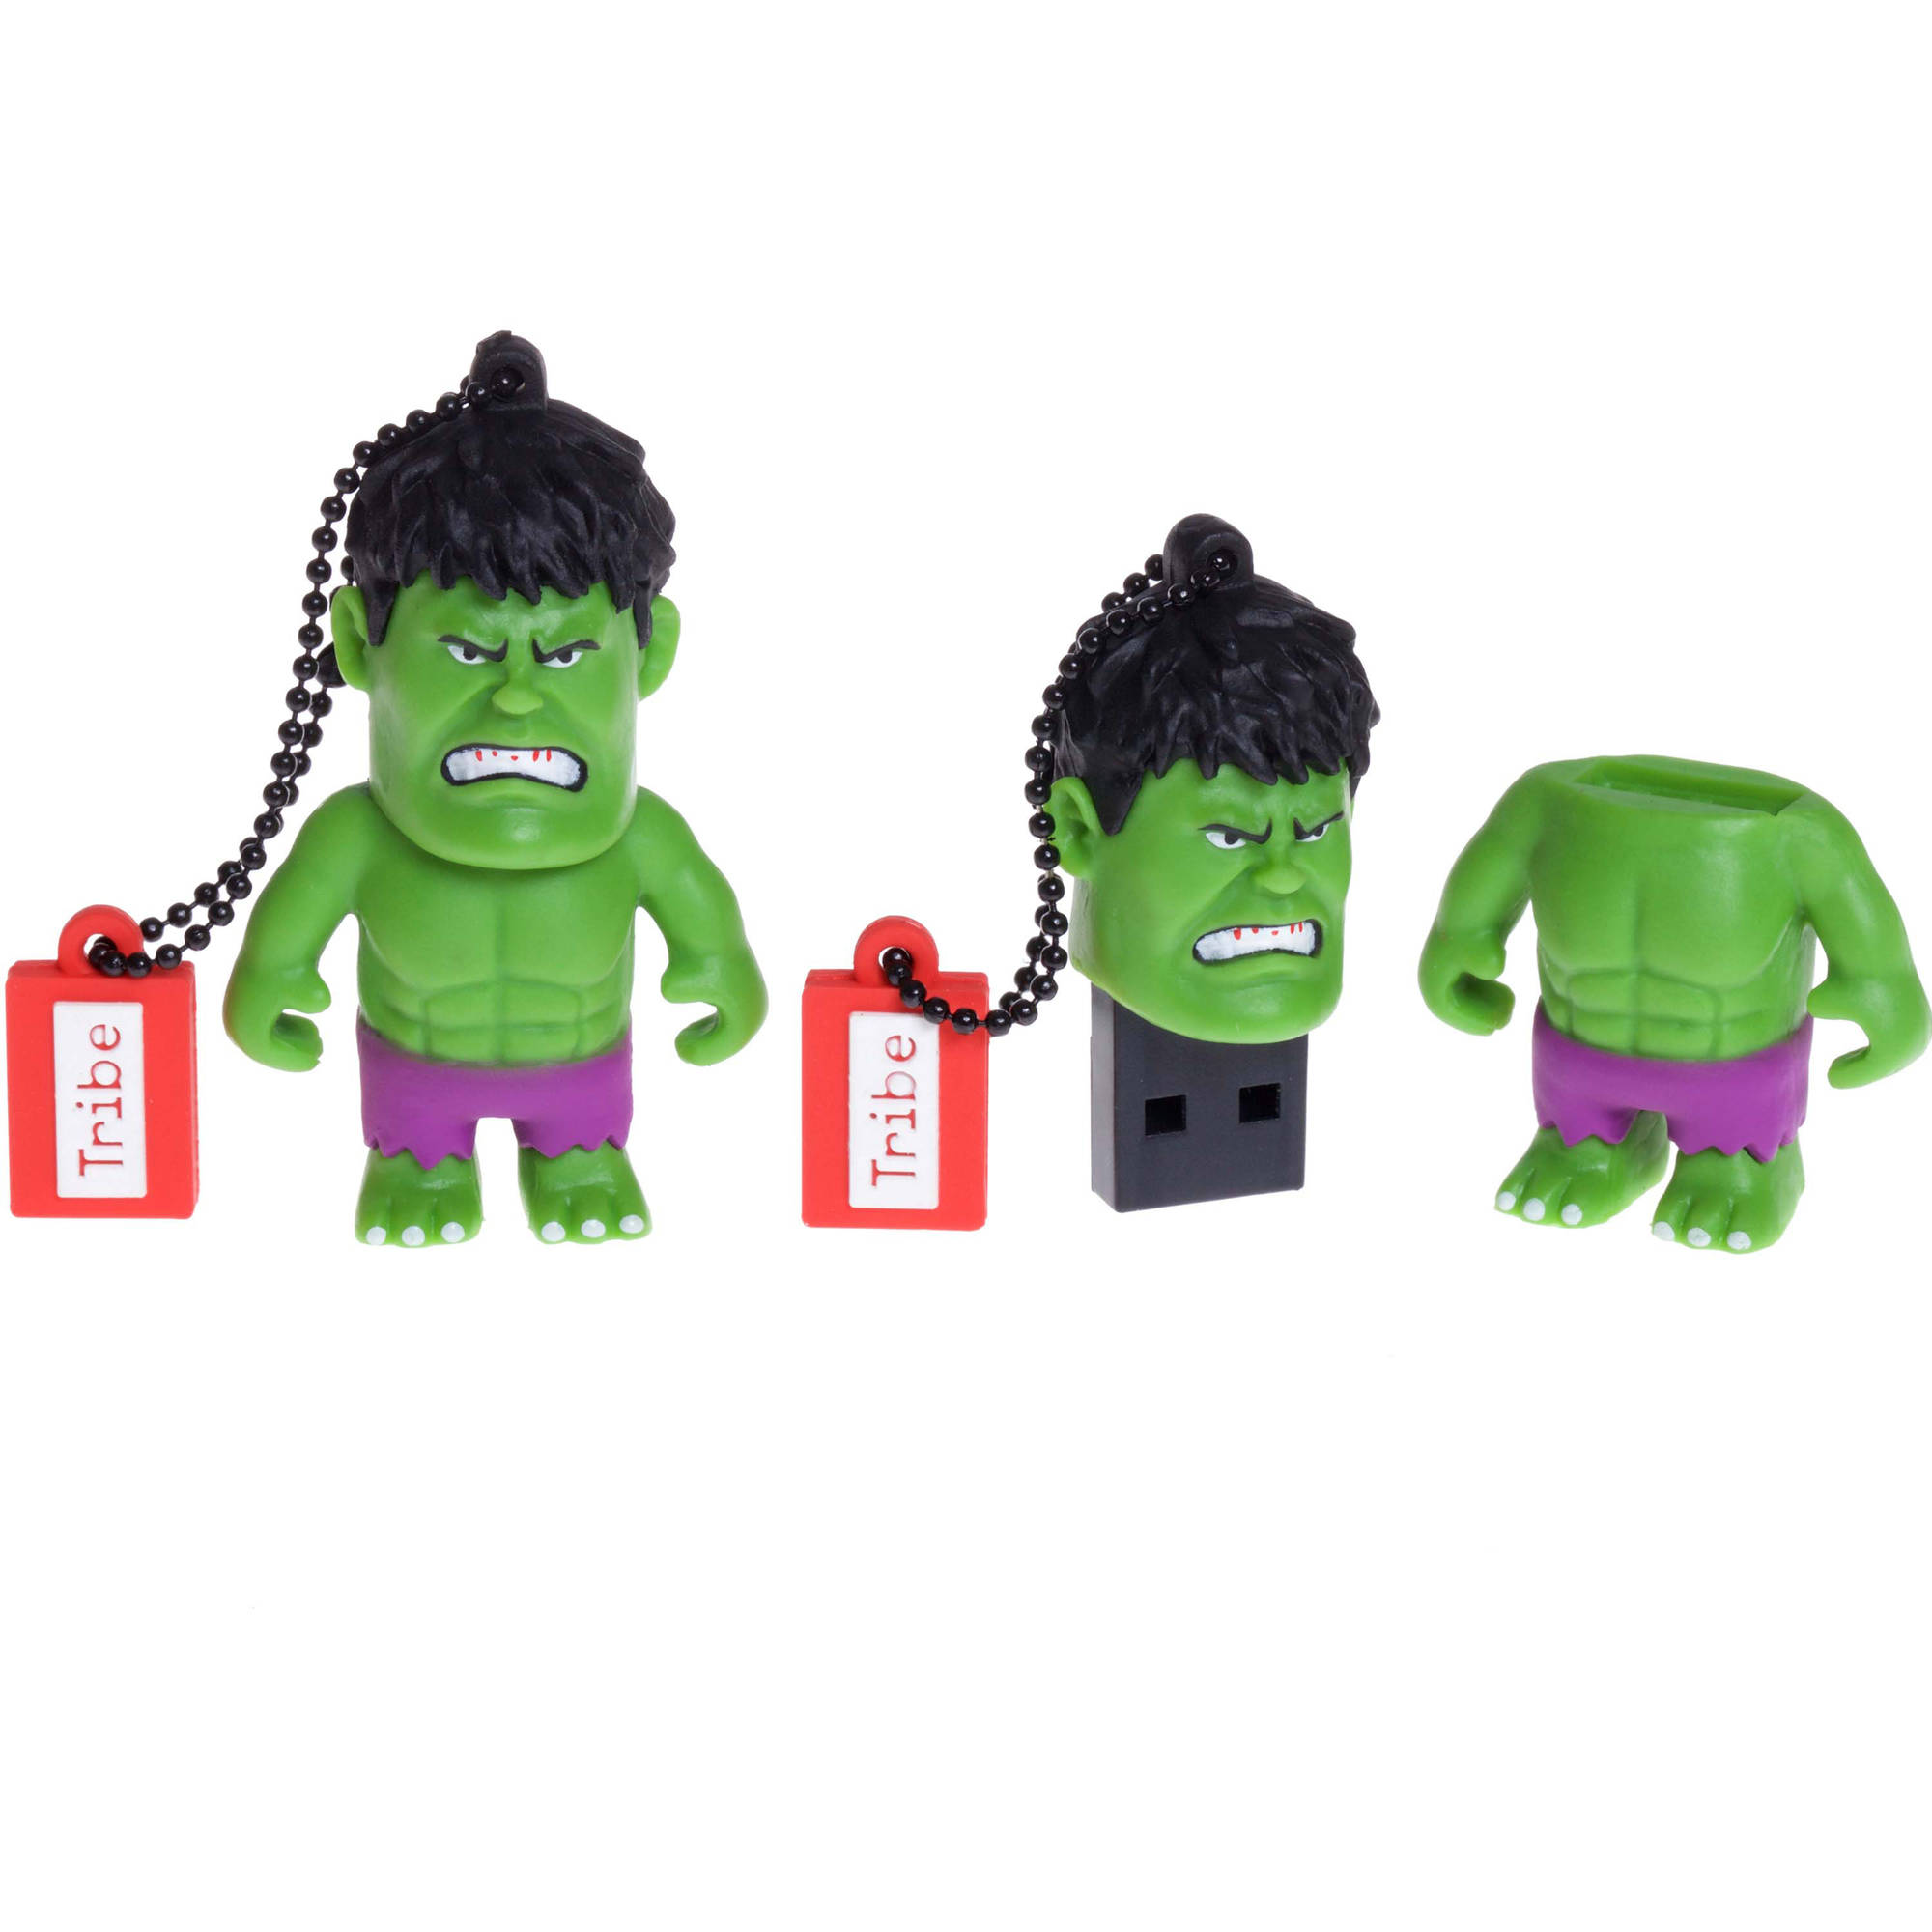 "Tribe USB Flash Drive 16GB Marvel ""The Avengers"" Hulk Collectible Figure"